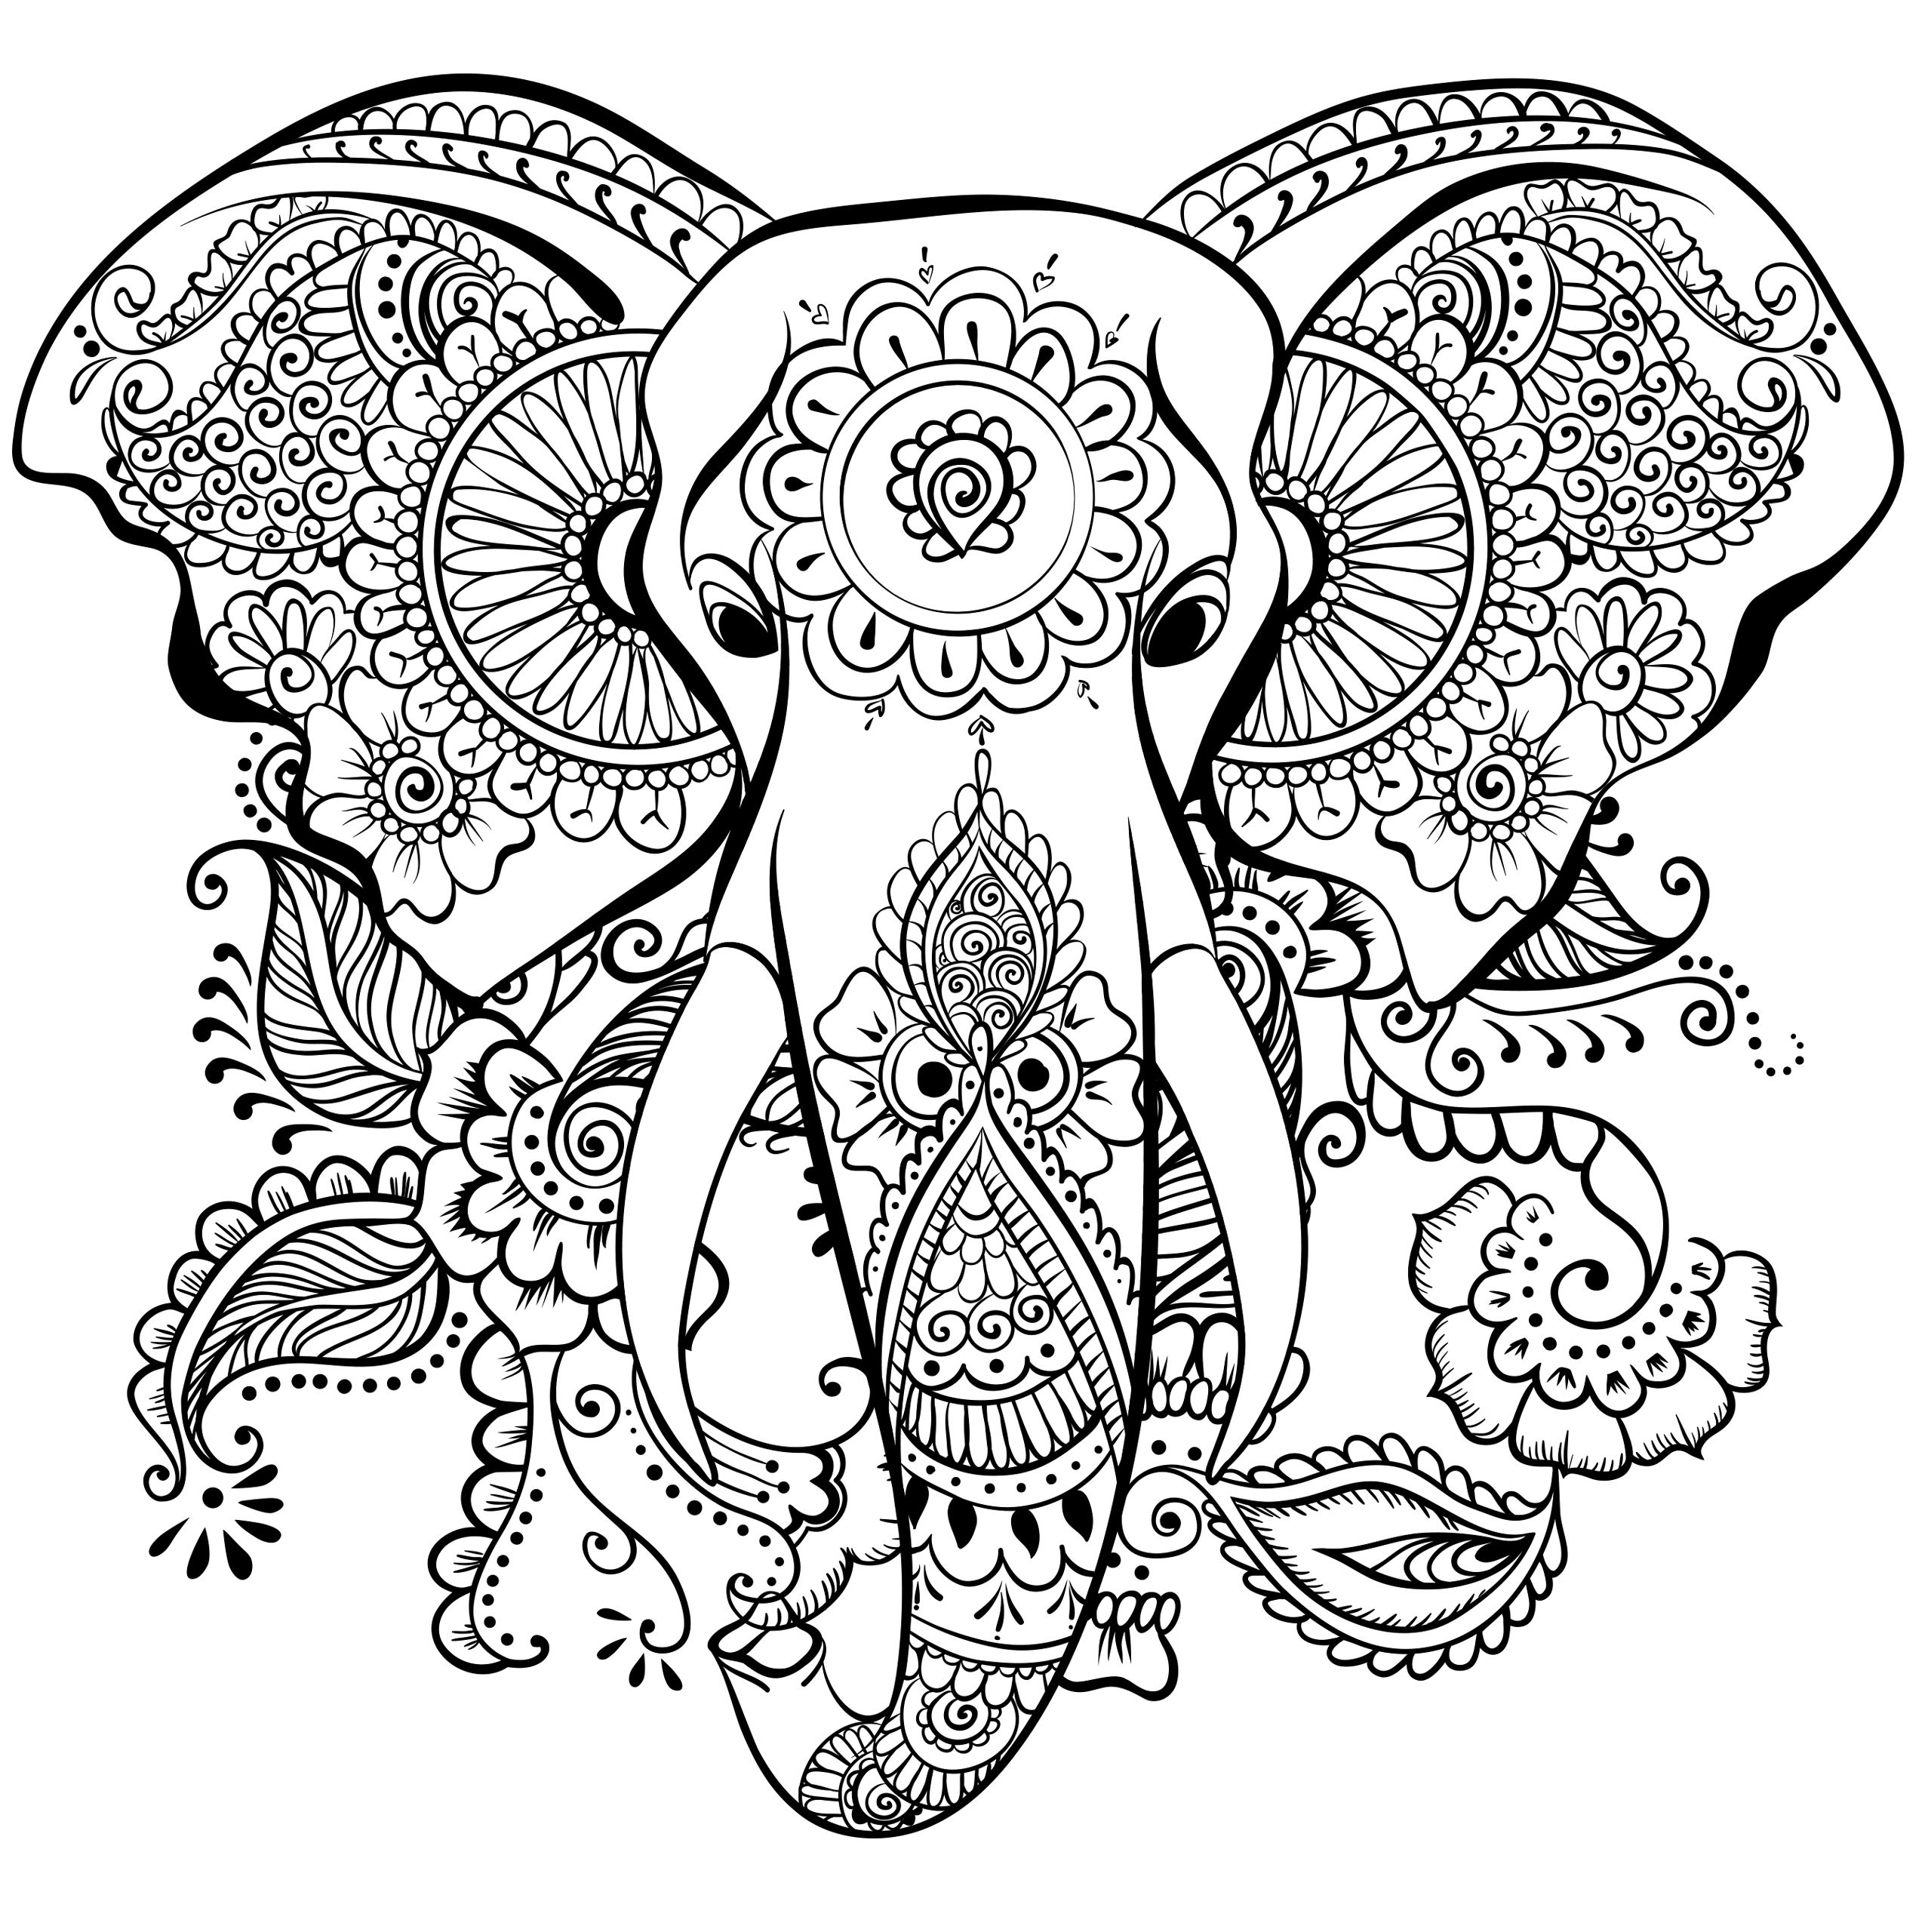 mandala coloring pages 19 mandala animal coloring pages download coloring sheets pages mandala coloring